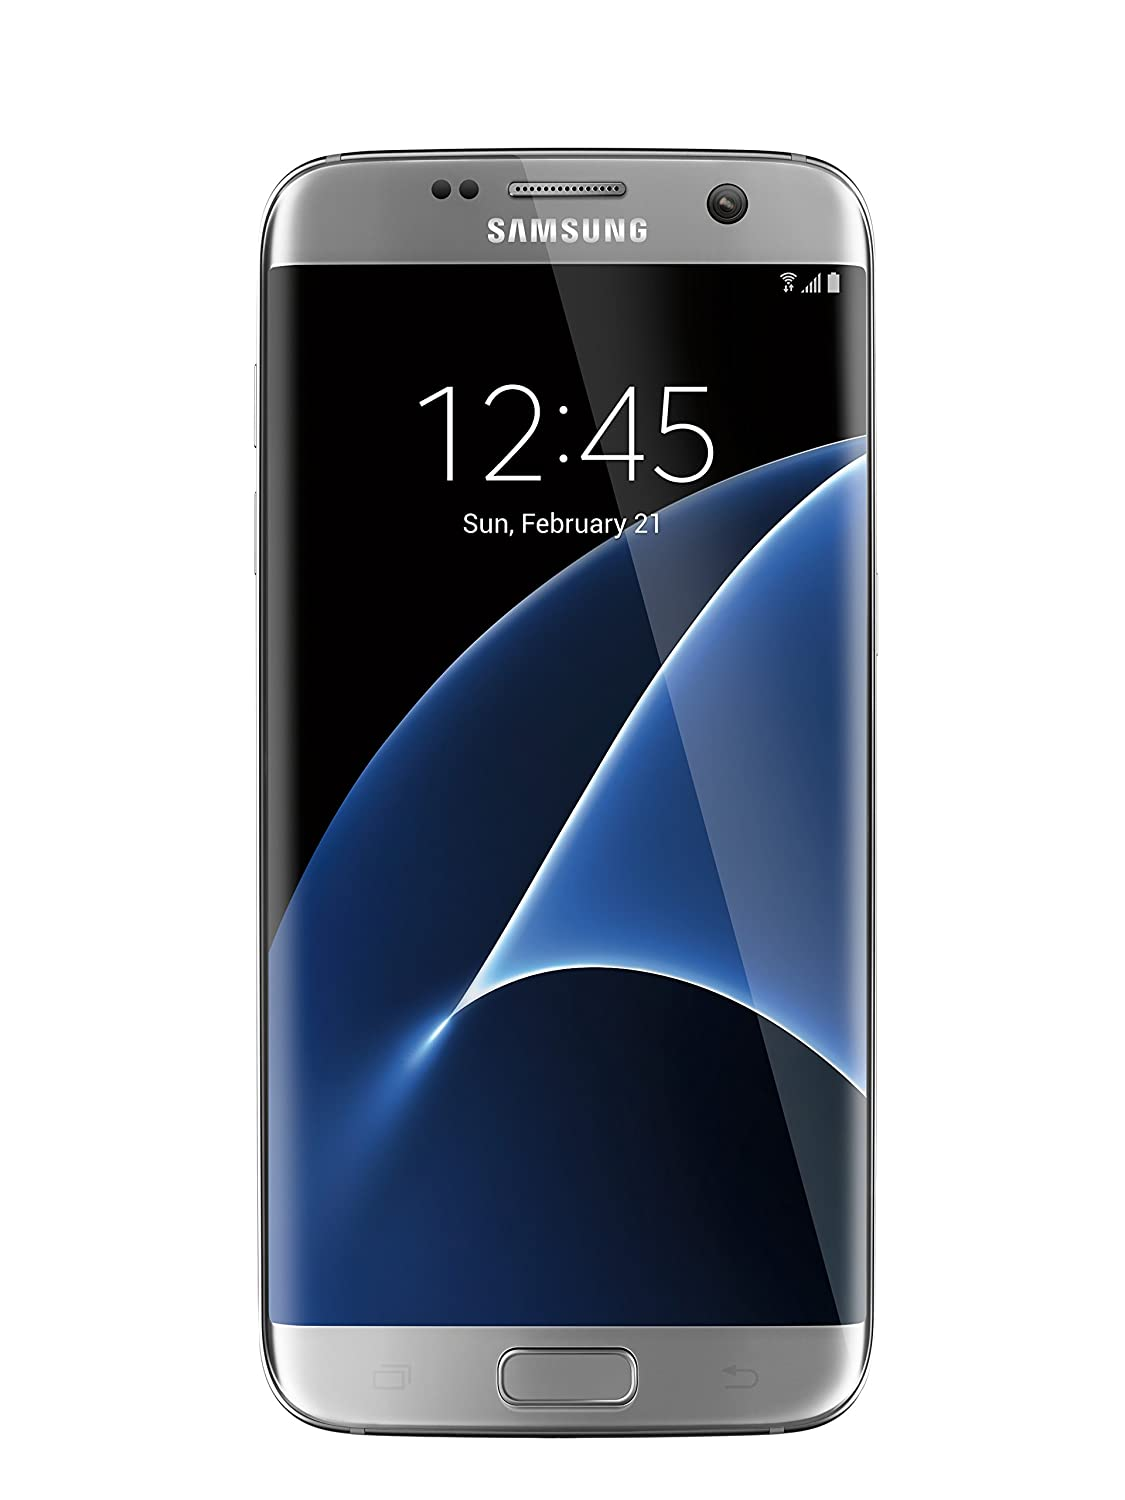 Samsung Galaxy S7 Edge 32 GB Unlocked Phone - G935FD Dual SIM - International Version - Titanium Silver